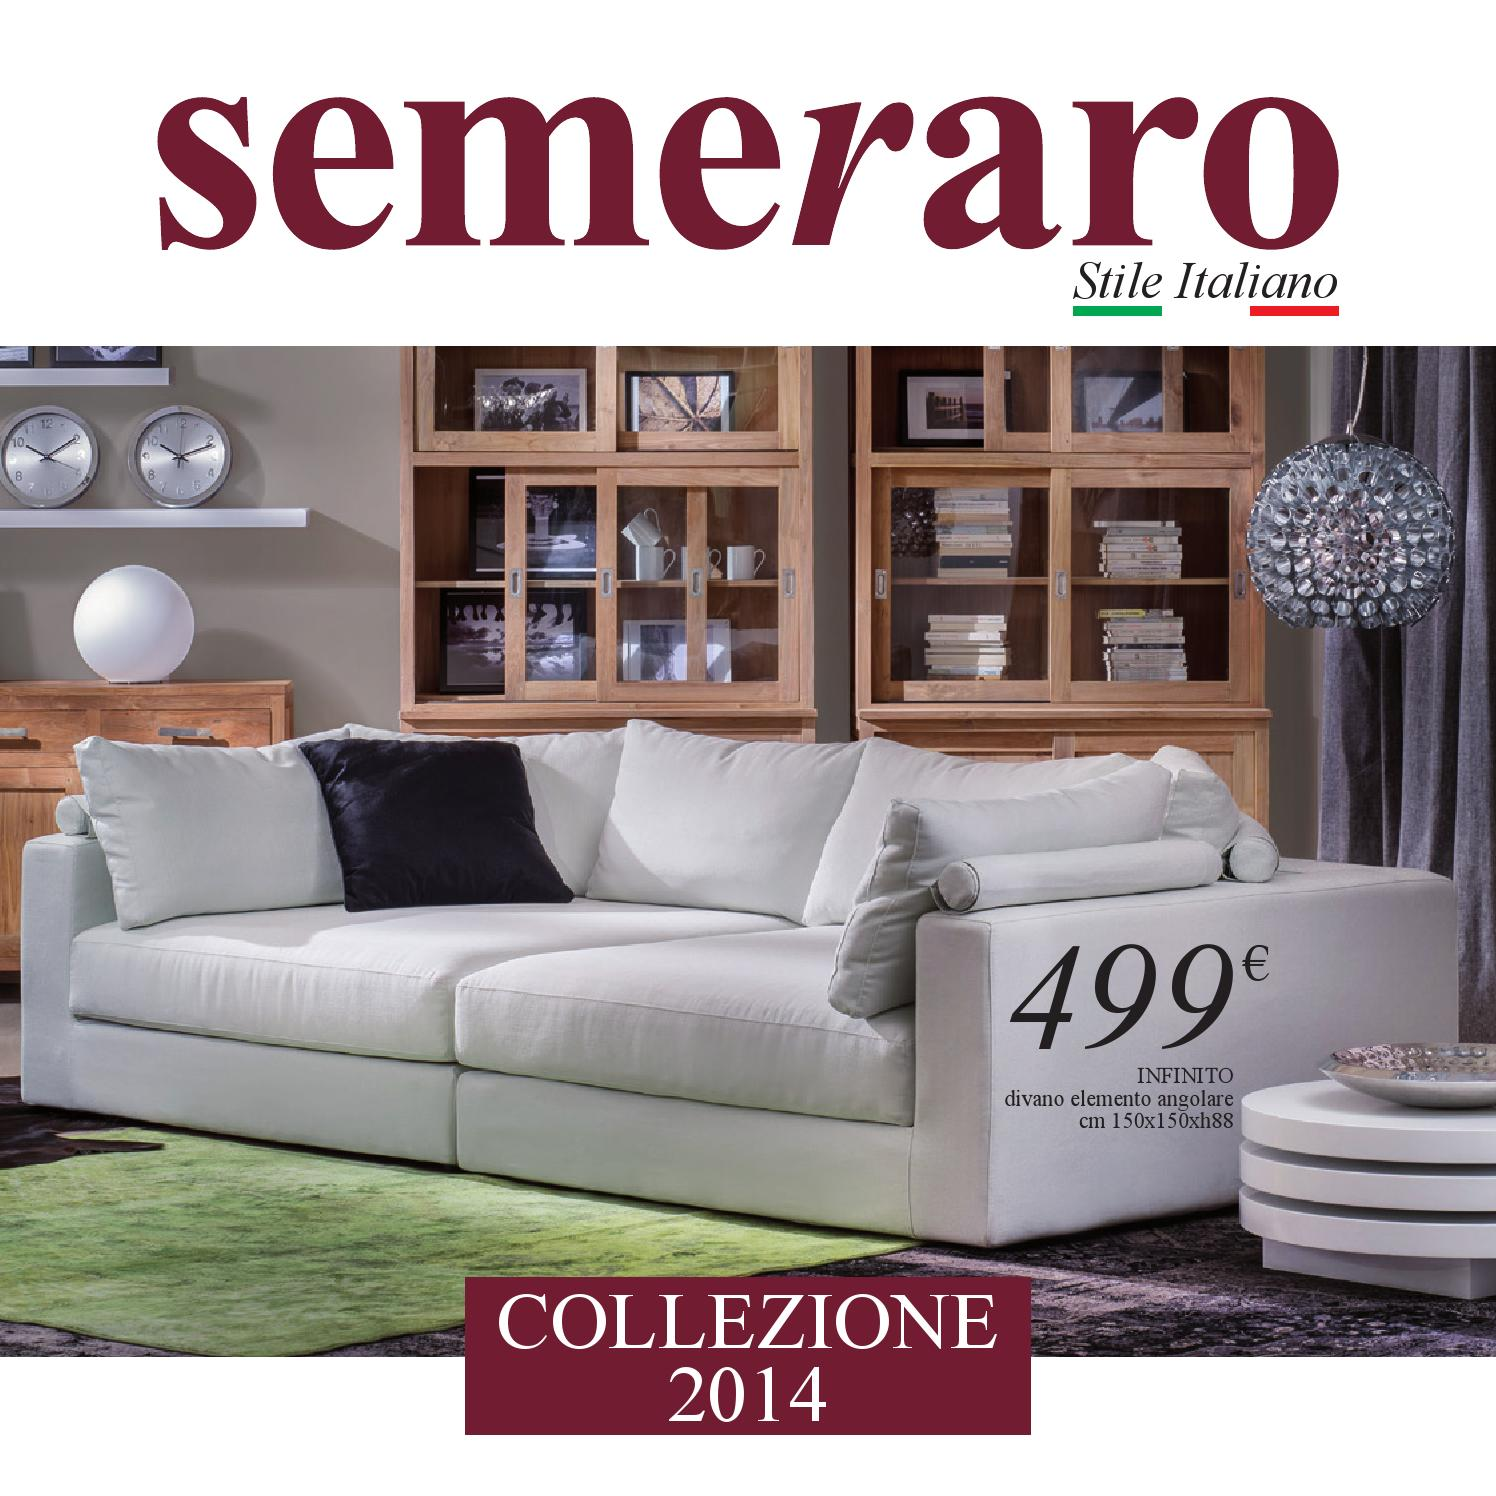 Catalogo semeraro 04 2014 by ovvio issuu - Cucina betty semeraro ...